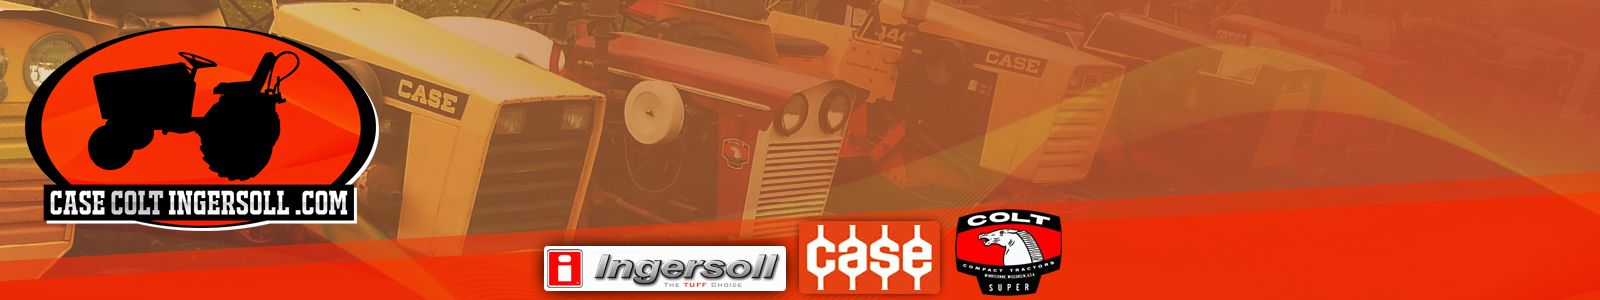 Case Colt Ingersoll Lawn and Garden Tractor Forum - Powered by vBulletin